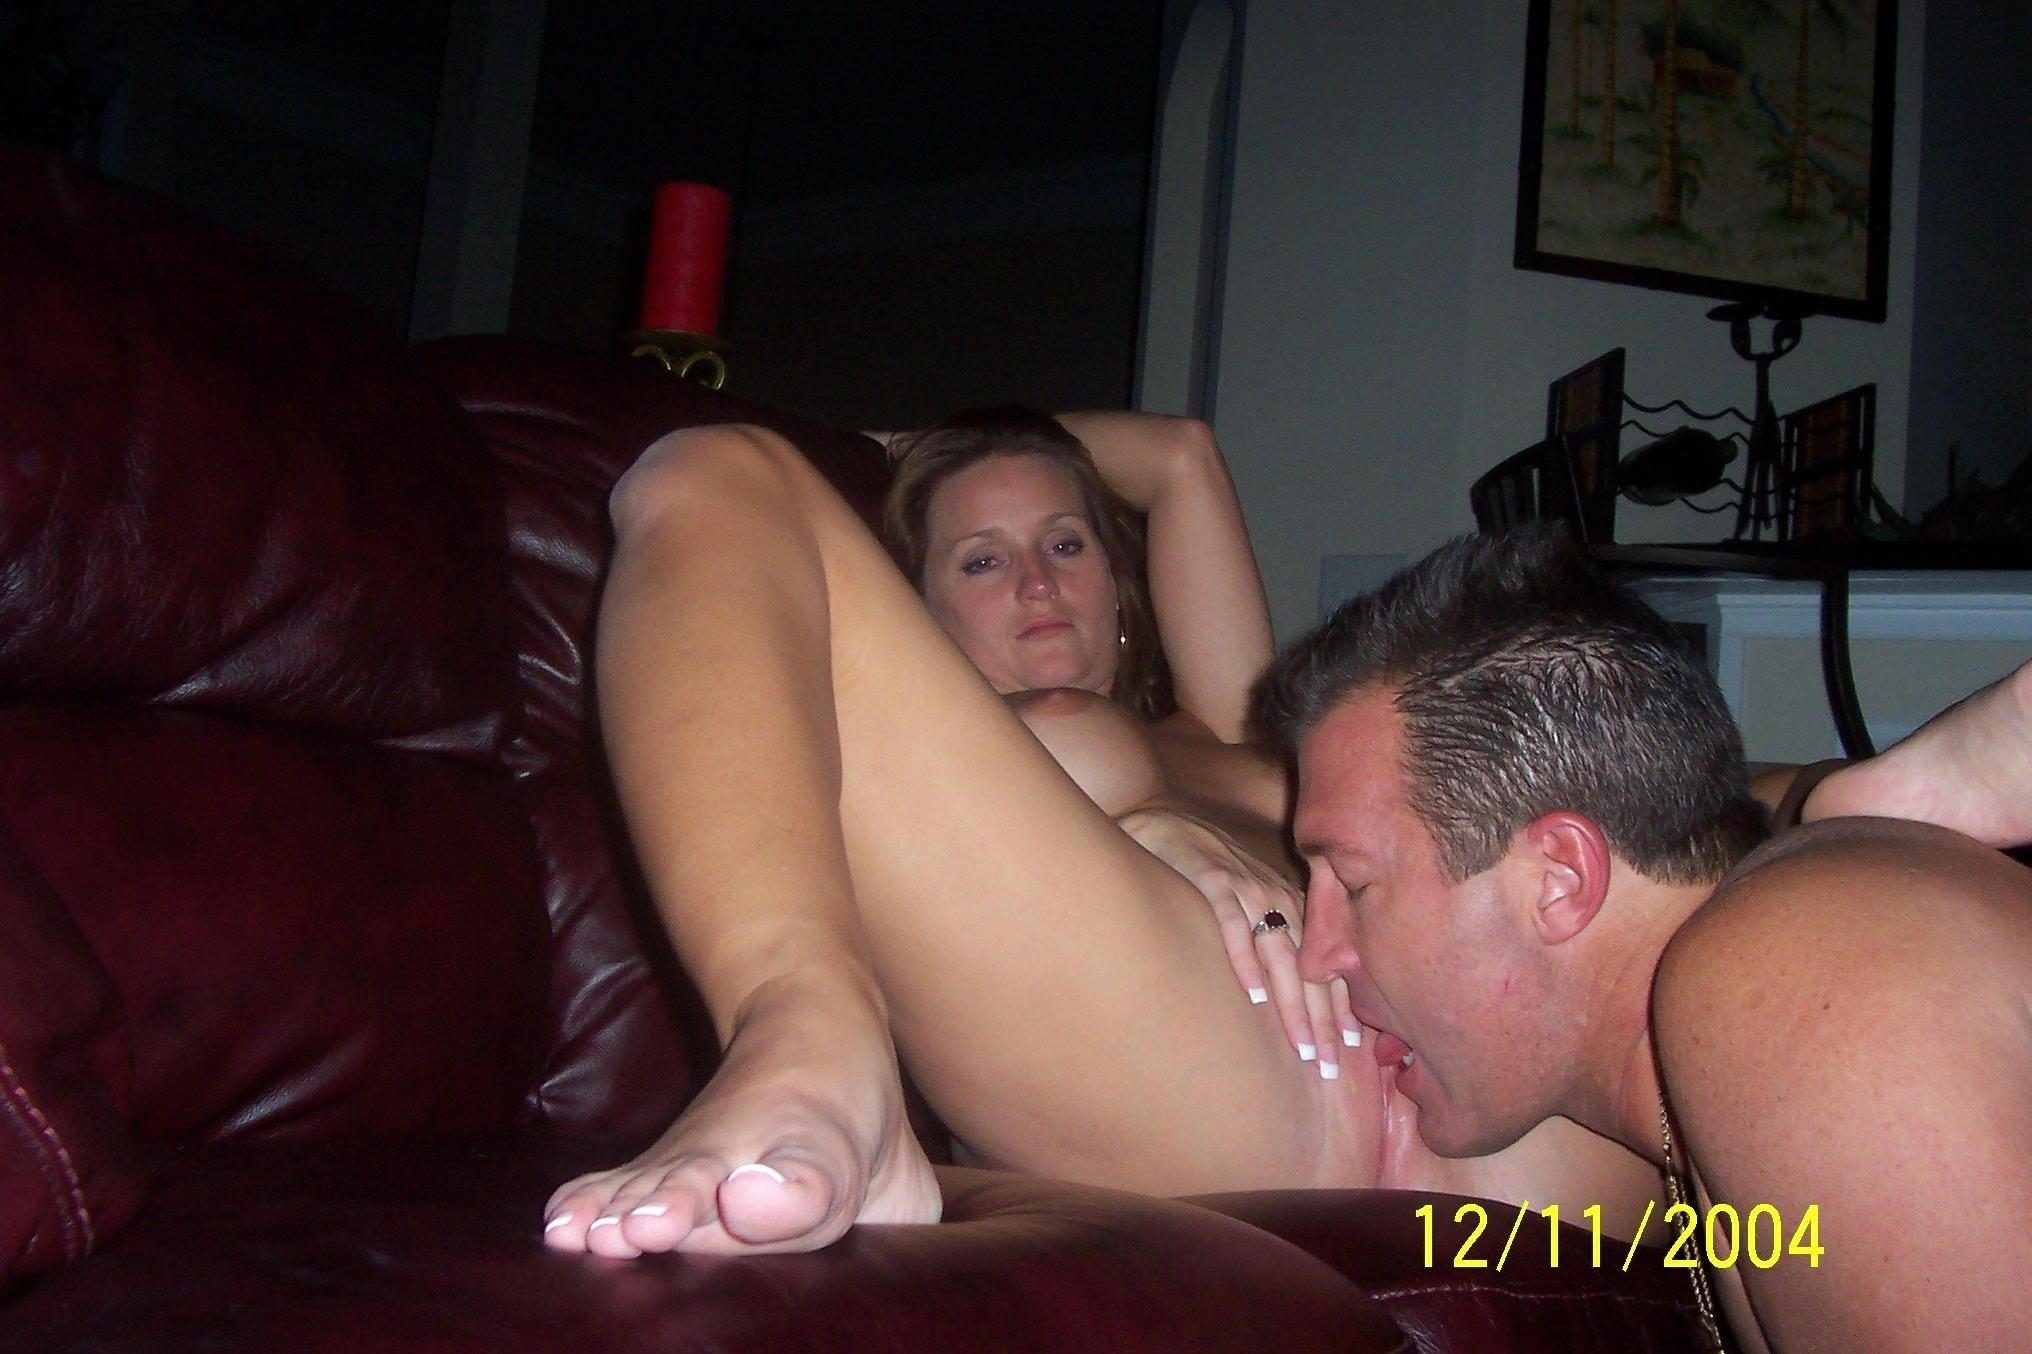 Hot Pussy Licking, Blowjob And Pounding On Amateur Sex Tape